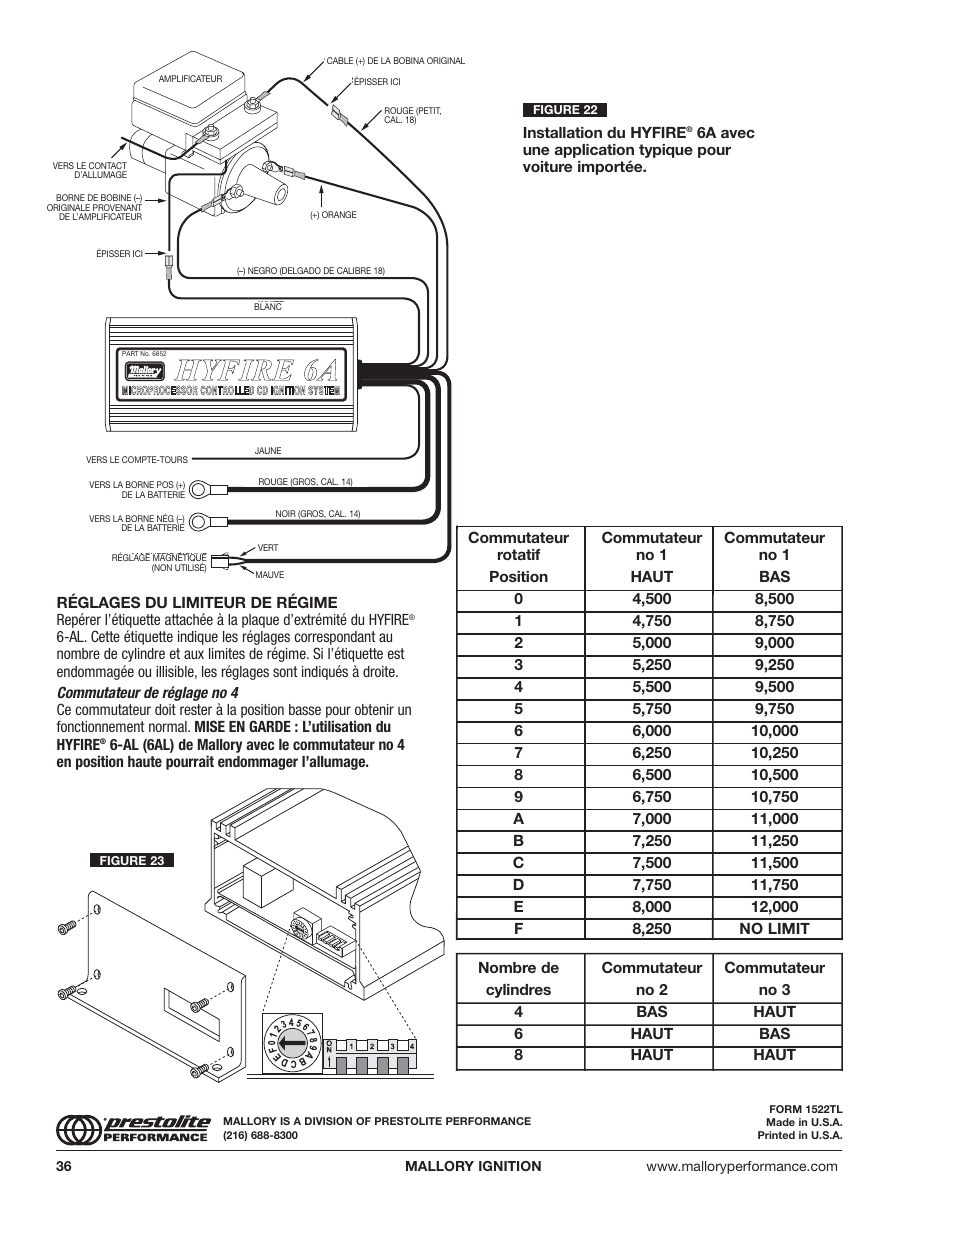 mallory ignition mallory hyfire 6a and 6al series electronic ignition controls 6852m_6853m page36?resize\\=665%2C861 mallory high fire ignition wiring diagrams mallory dist wiring mallory 6al wiring diagram at edmiracle.co